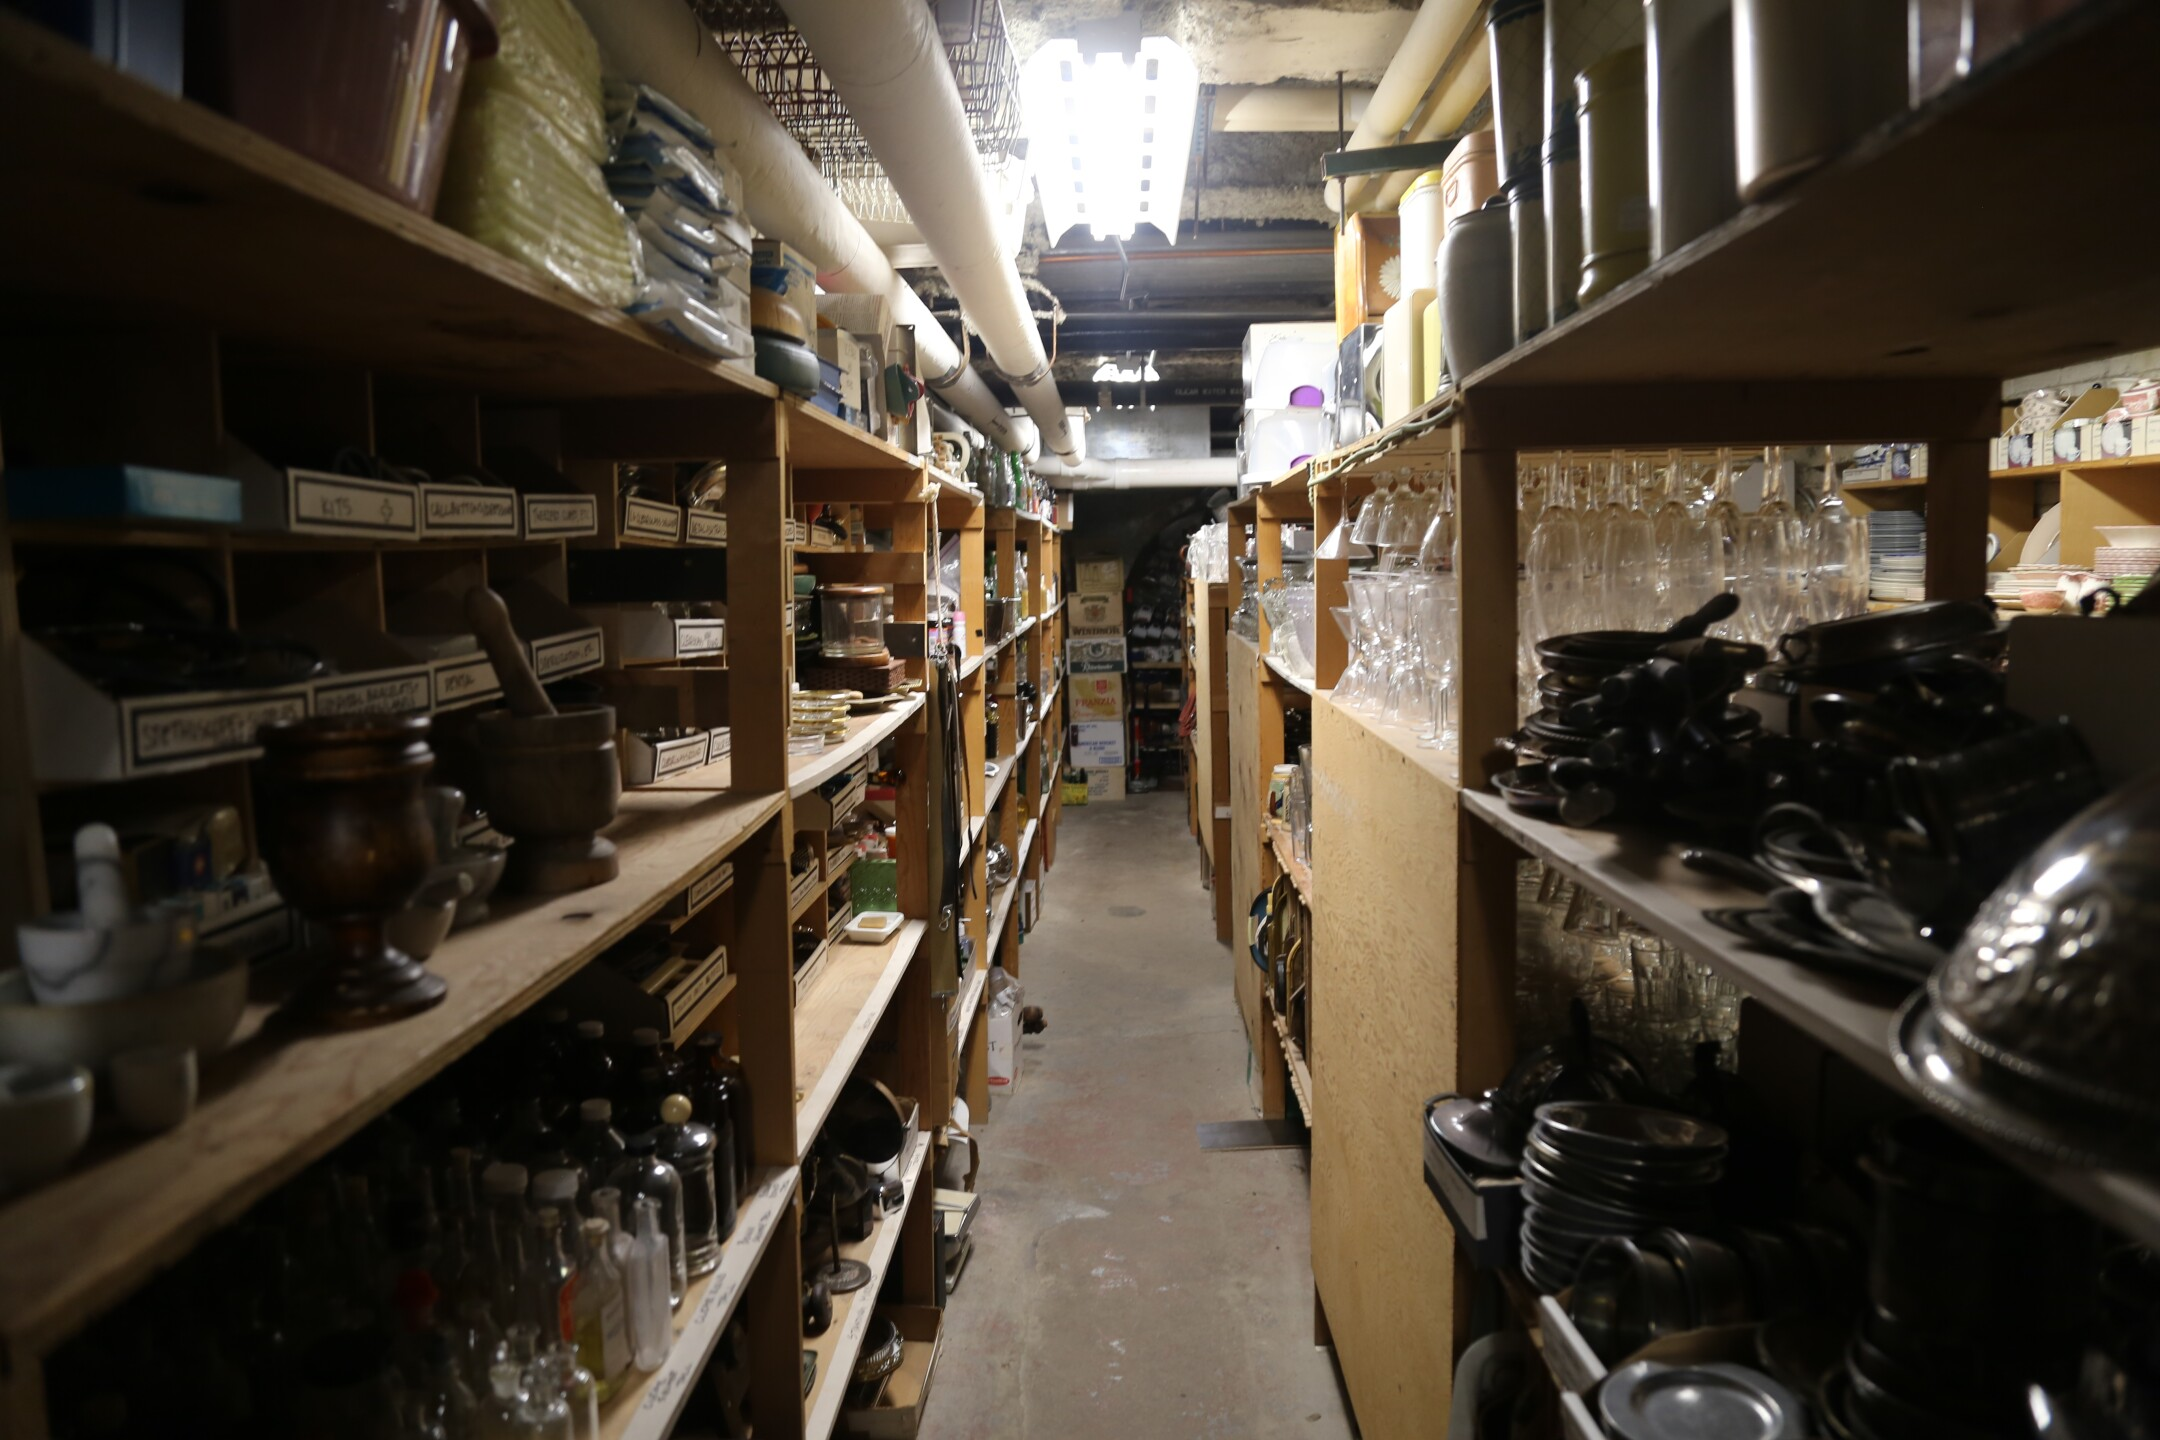 Rows of dishes.JPG